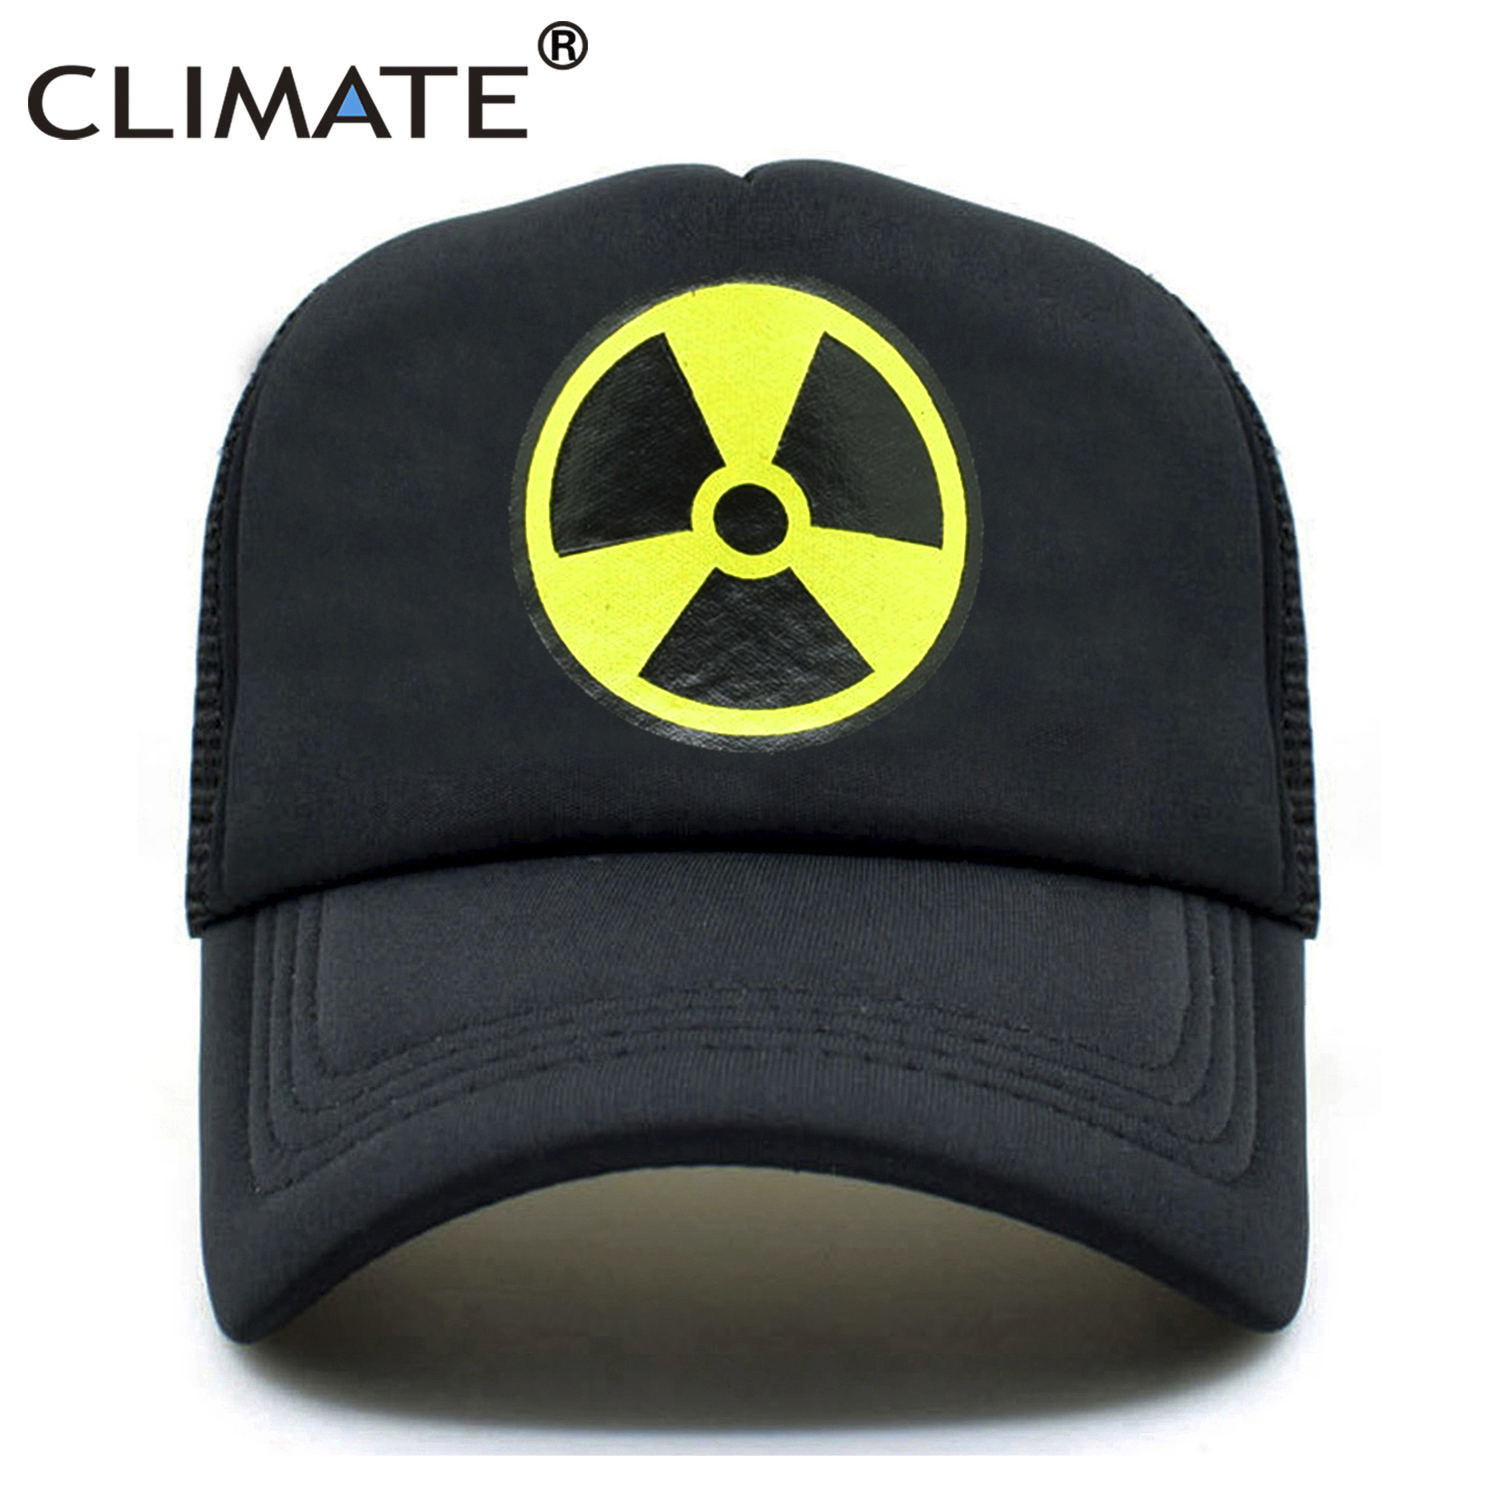 2beee5ae7bf Detail Feedback Questions about CLIMATE Fallout 4 Shelter Trucker Caps  Women Men Black Baseball Cap Summer Hot Game Fans Cool Mesh Cap X RAY  Summer Hat Men ...